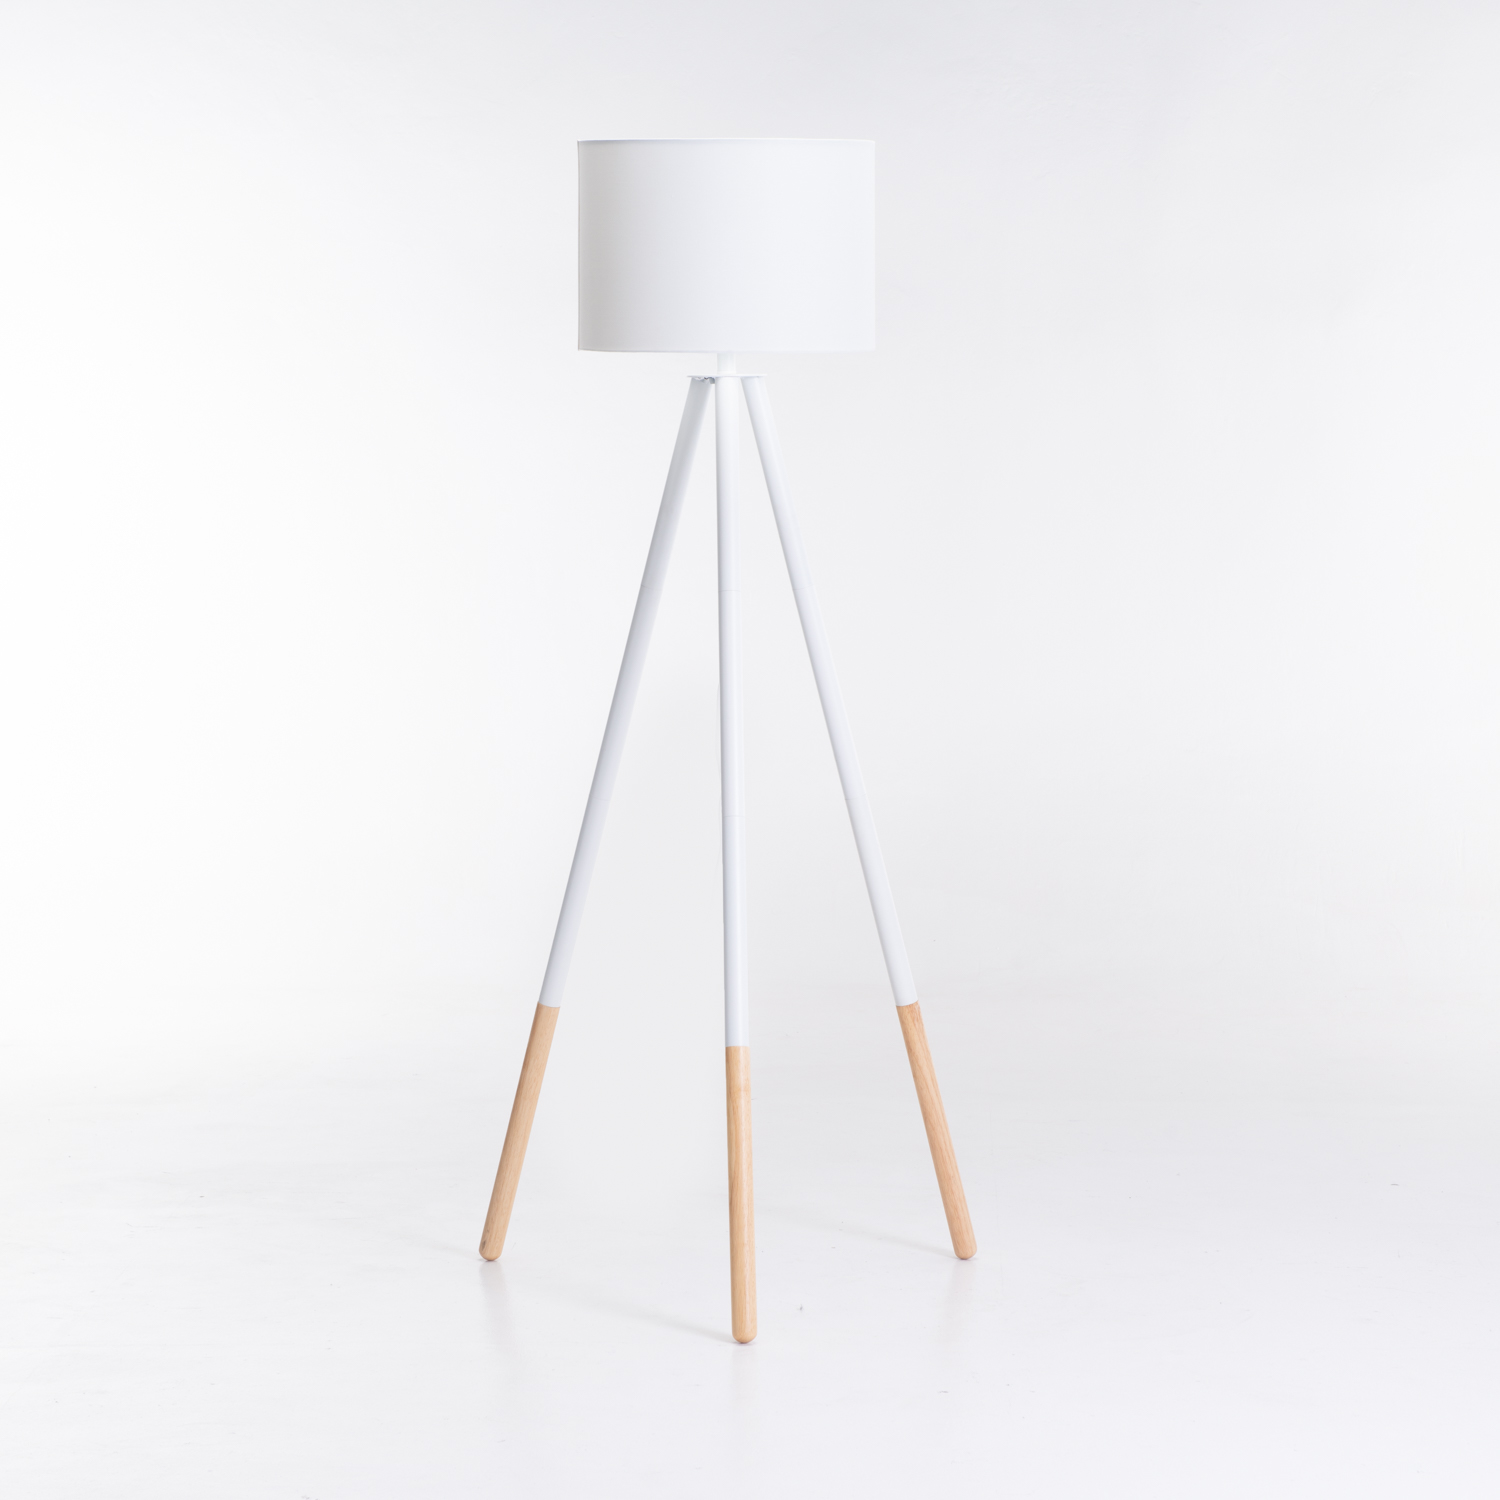 LAMP FLOOR-WOODEN TRIPOD-WHITE FABRIC SHADE 156cm